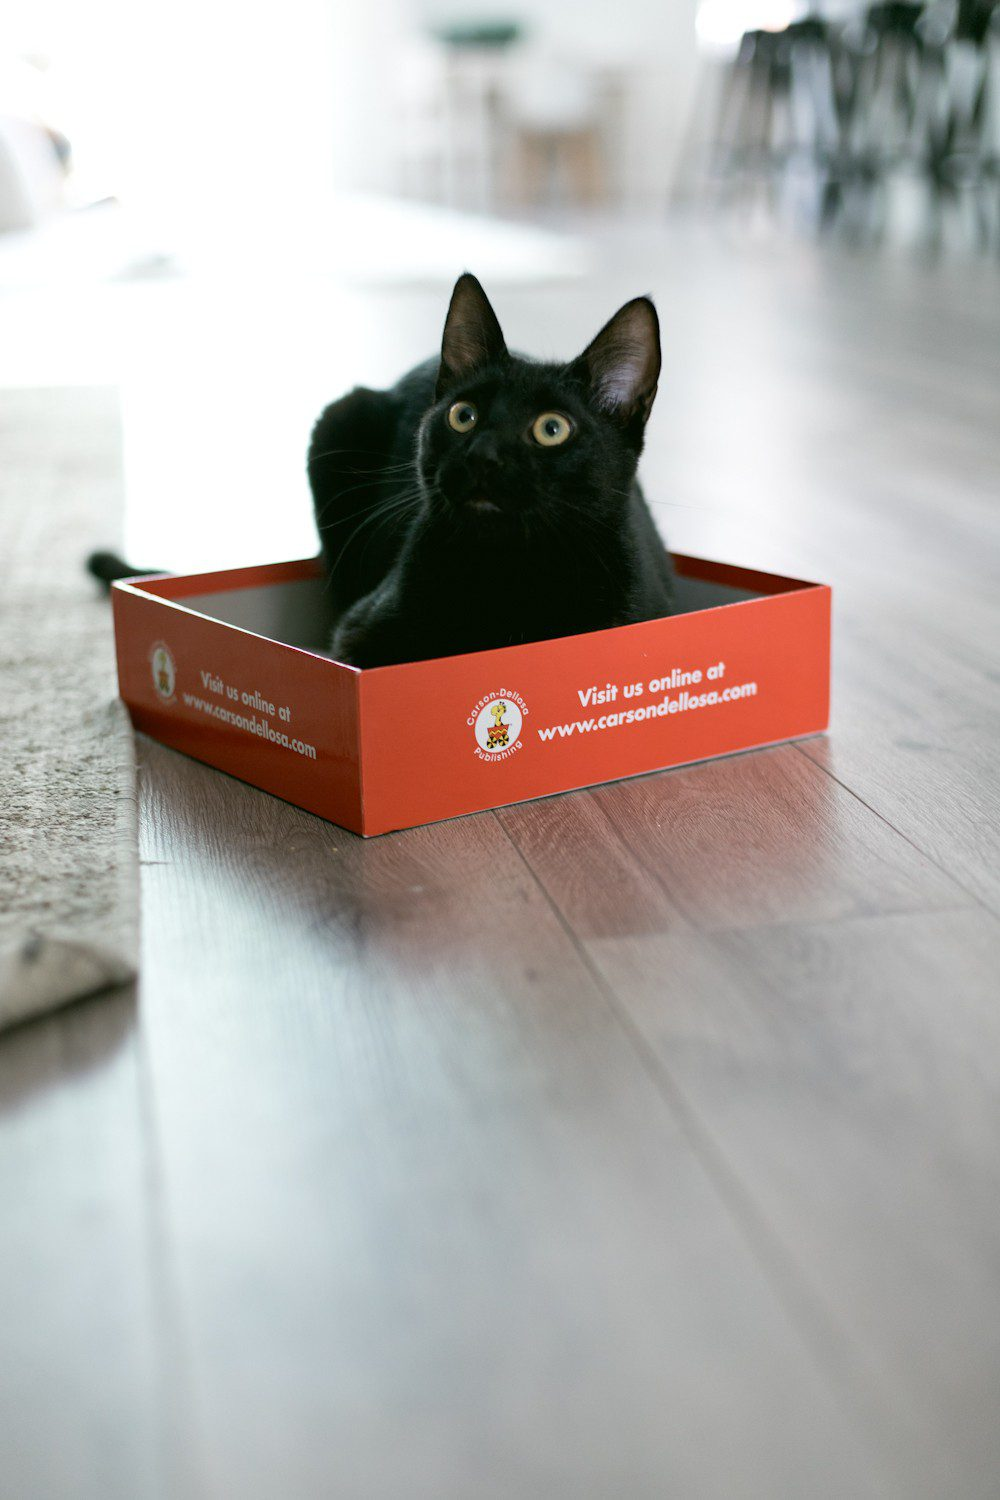 5 Essential Things for the Best Kitten Care from top US lifestyle blogger Tabitha Blue of Fresh Mommy Blog! I hate cat litter! Here's why the Litter Robot is amazing and our new kitten care best friend.   How to Train Your Cat to Use the Litter Box by popular Tampa life and style blog, Fresh Mommy: image of a black cat sitting in a box.